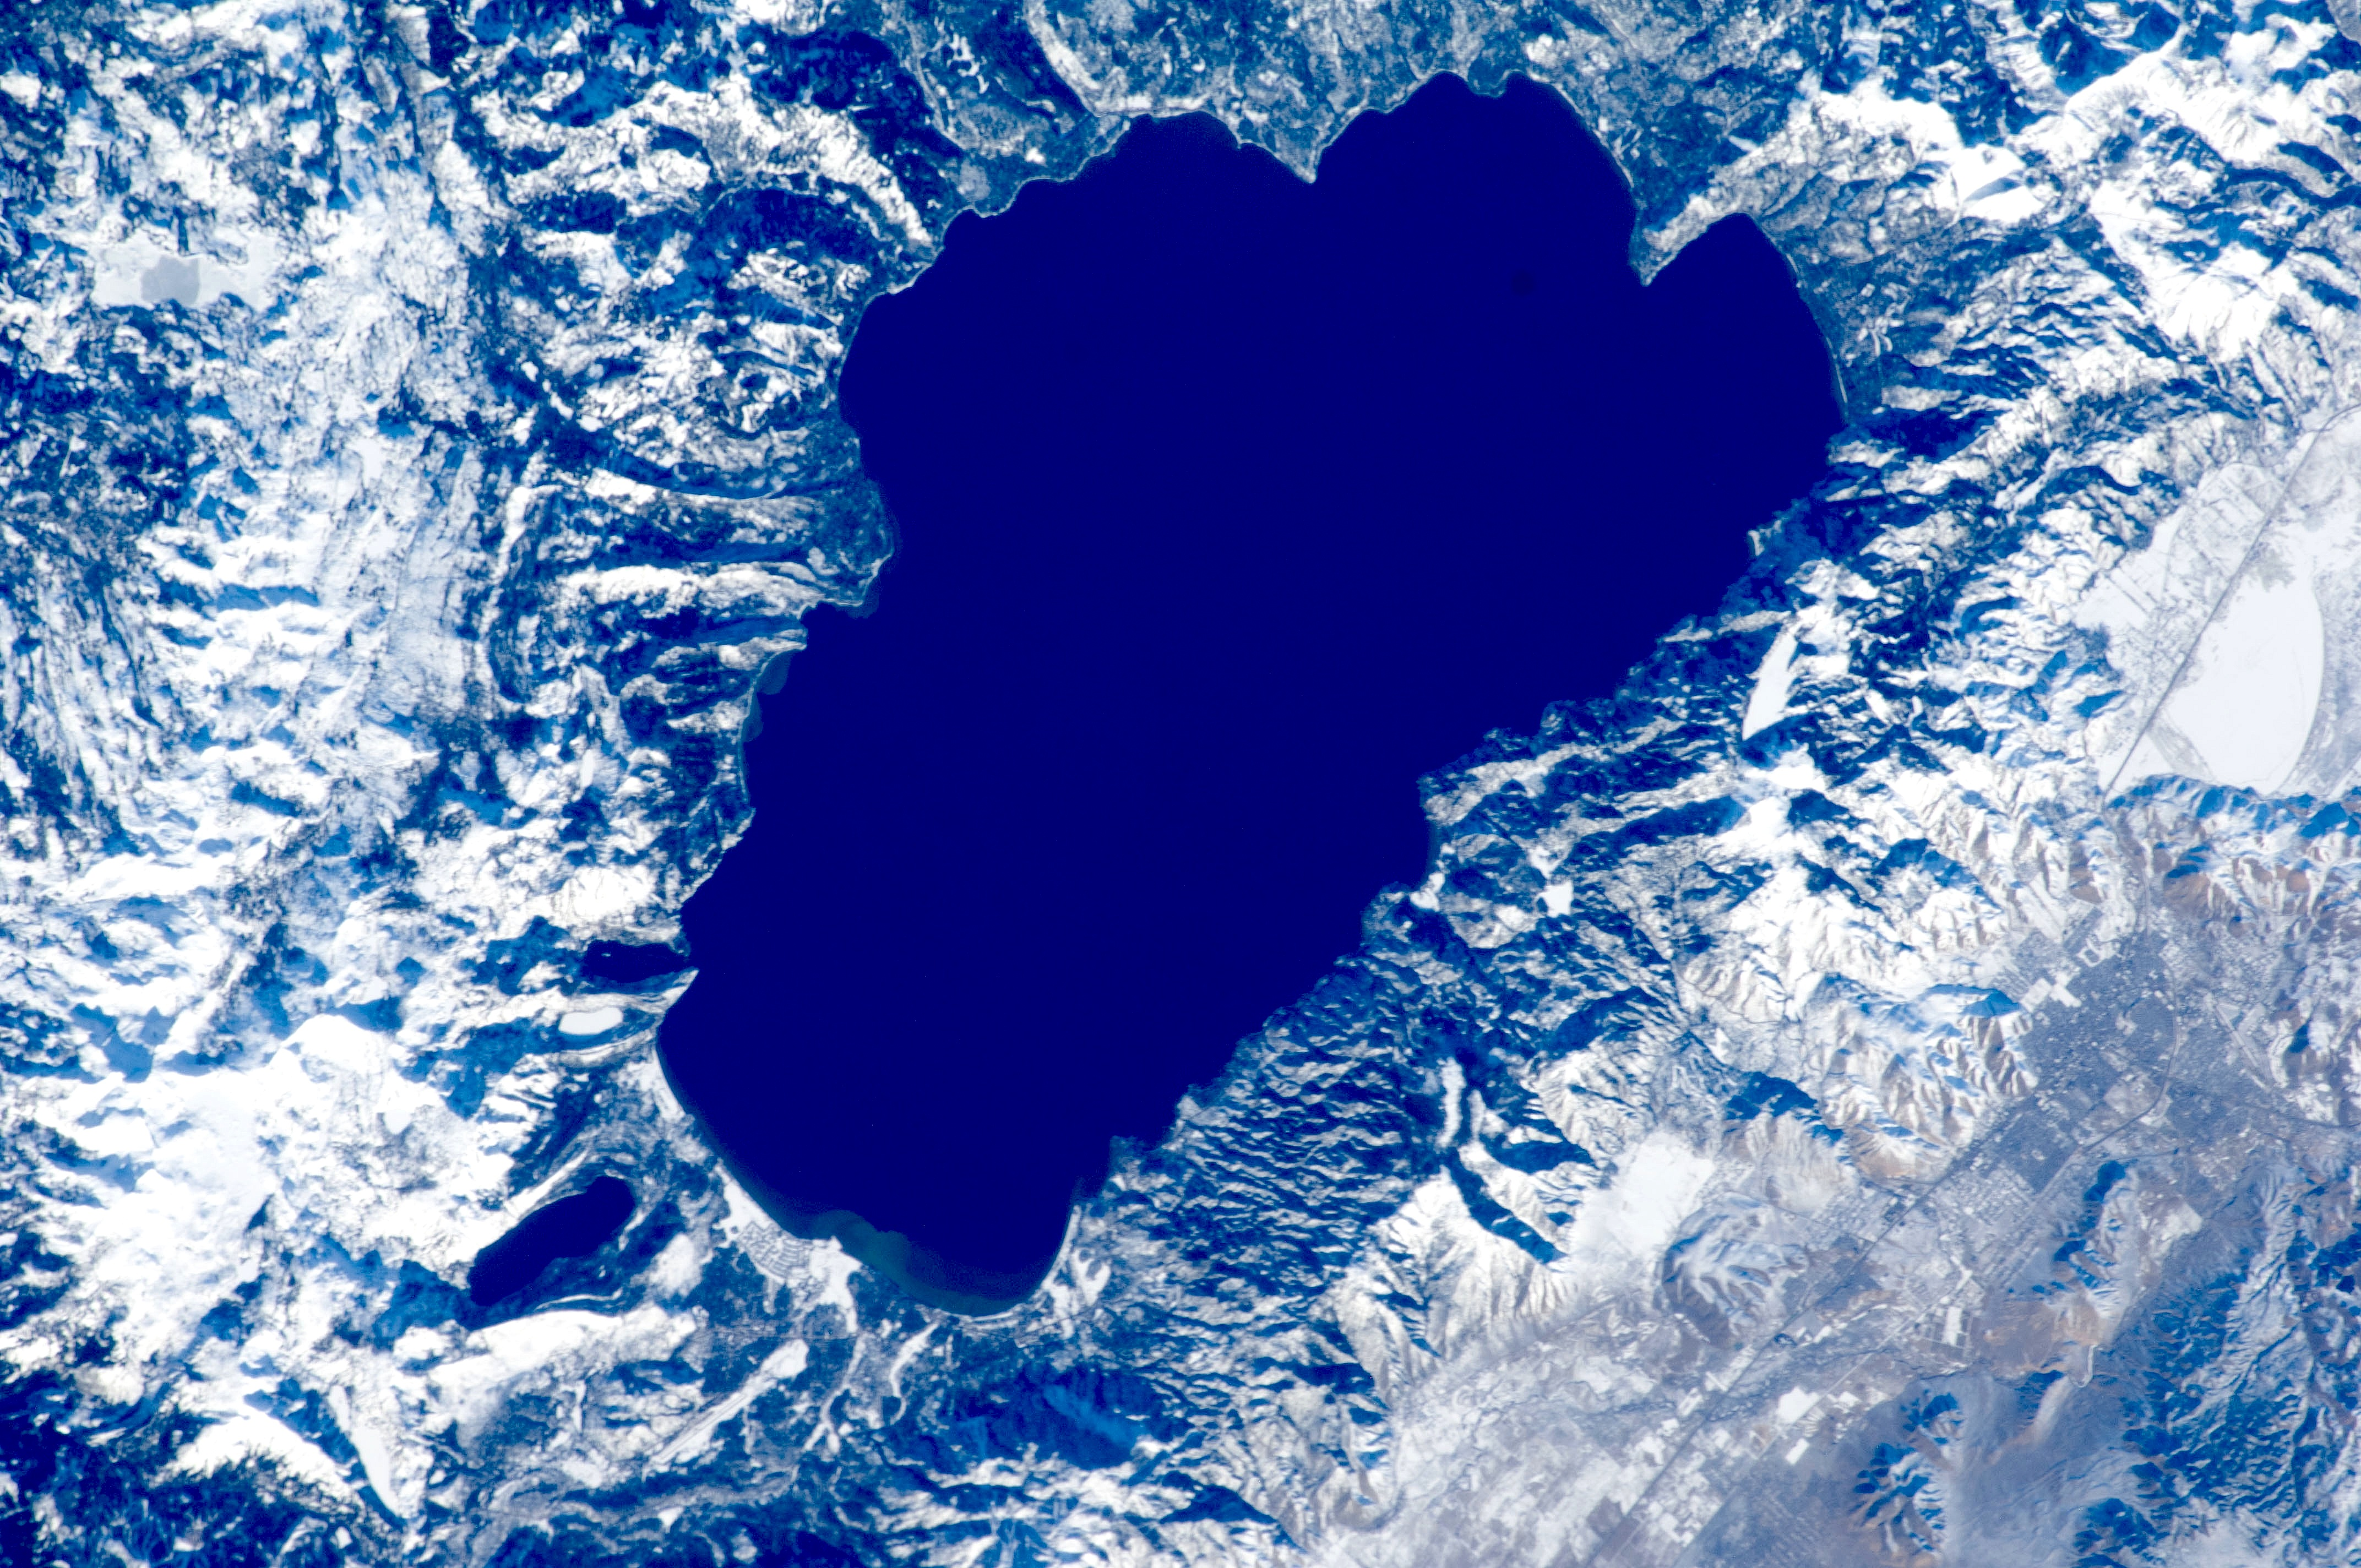 5 7 Earthquake Rocks Lake Tahoe Yesterday Did You Feel It Snowbrains